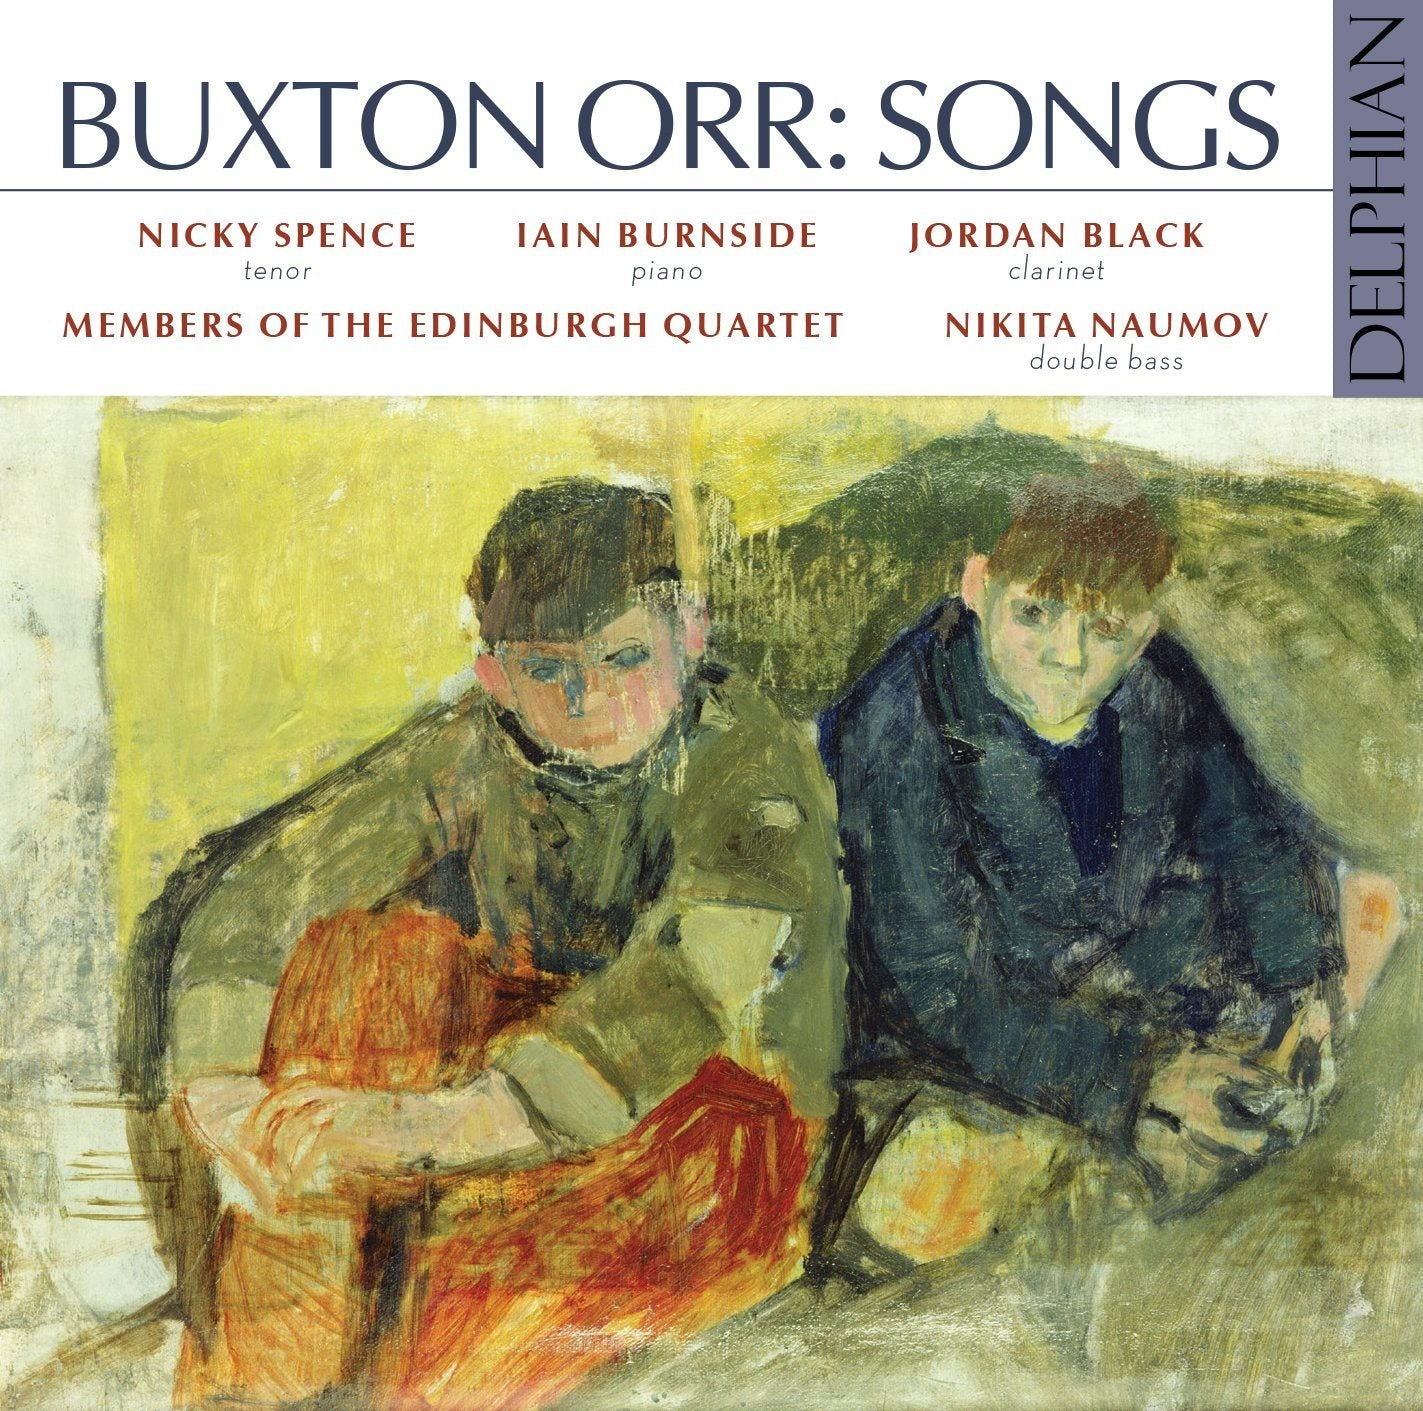 Buxton Orr: Songs CD Delphian Records